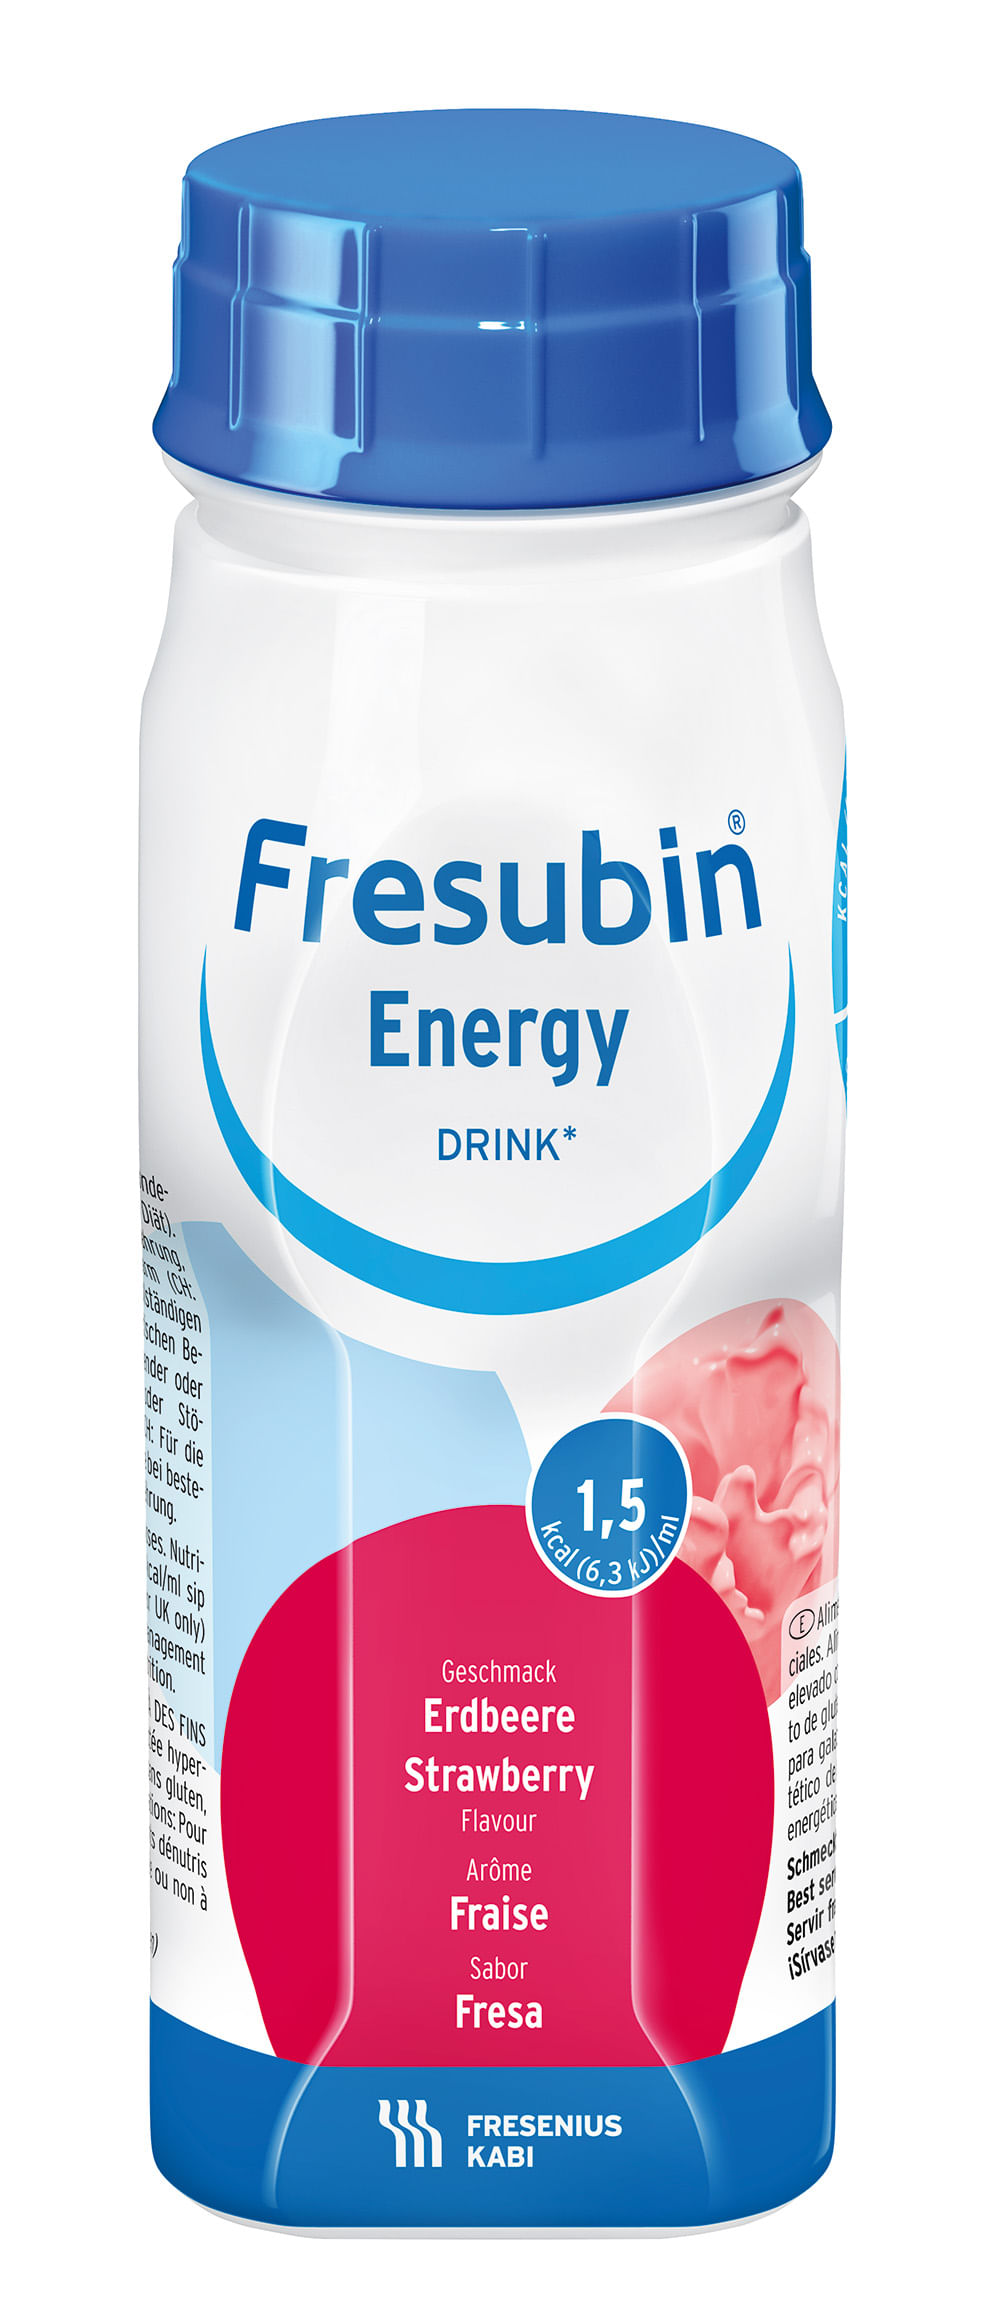 Fresubin_Energy_Strawberry_EBo_Frontal